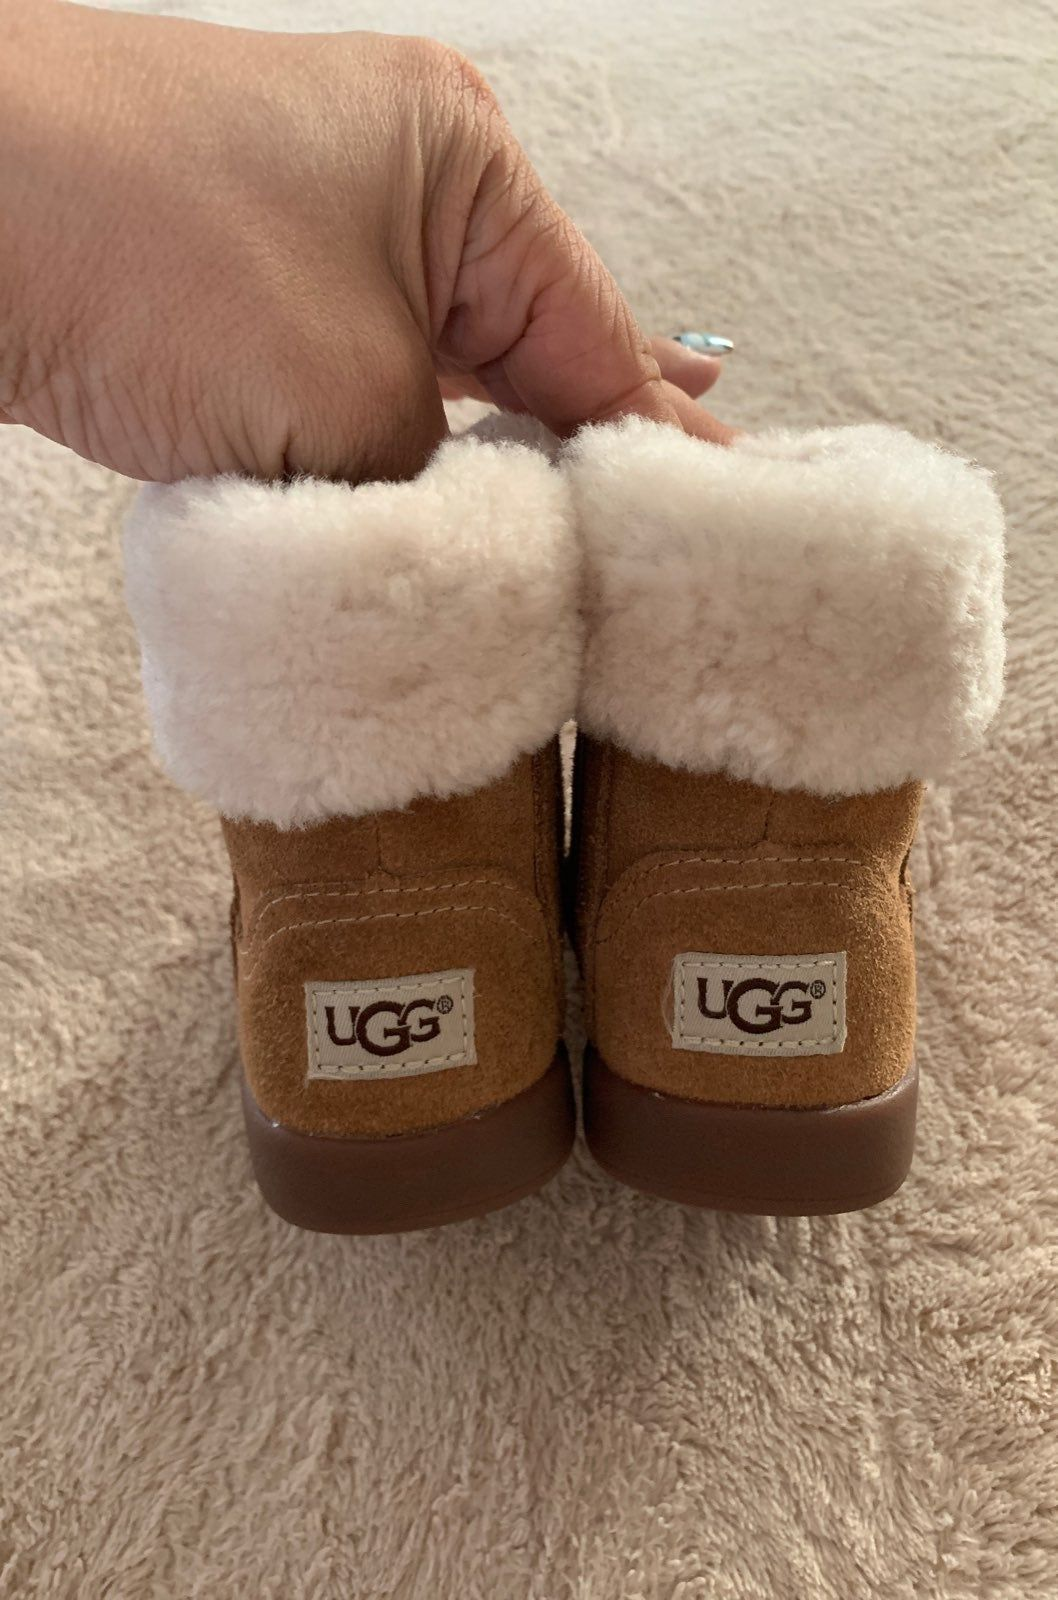 Baby uggs size 2/3 Lots of wear left